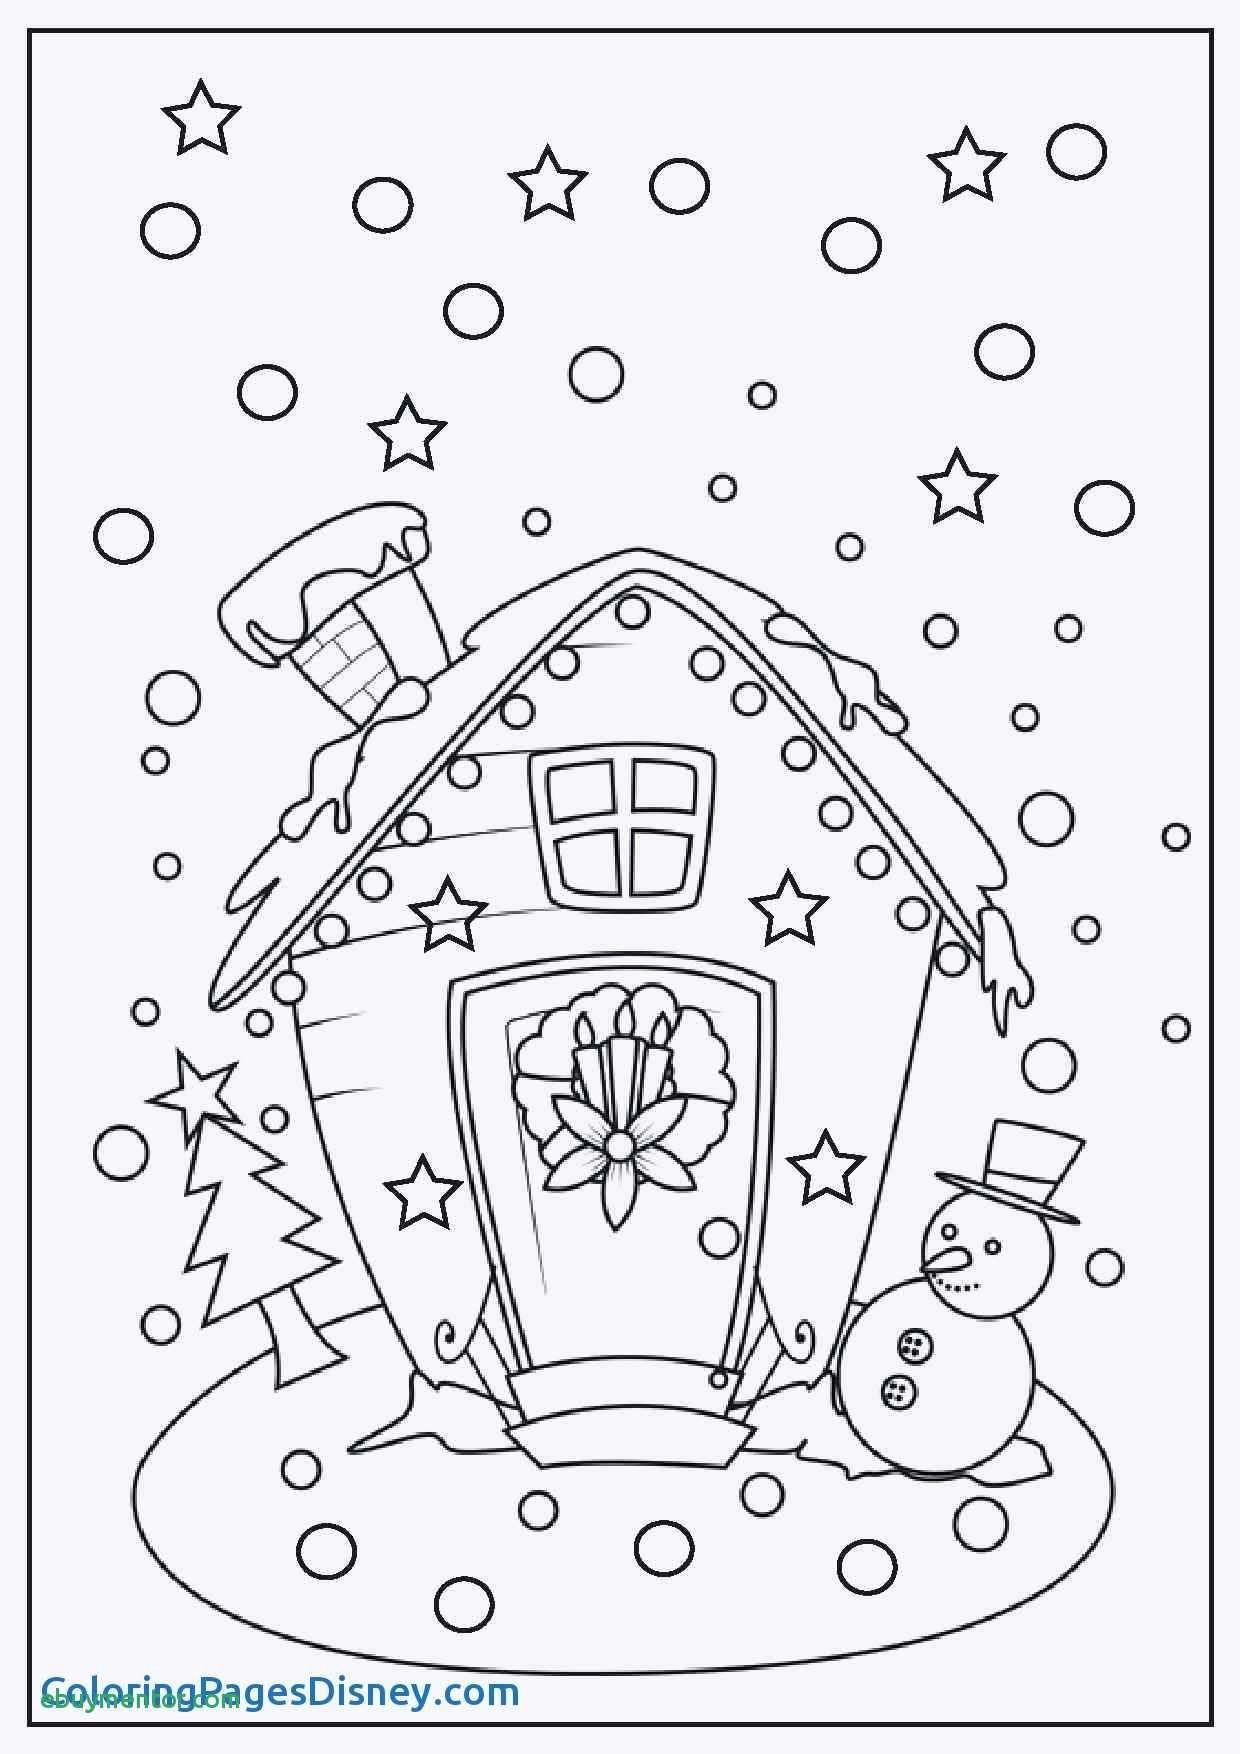 American Flag Coloring Pages for Preschool  Gallery 17j - Free Download